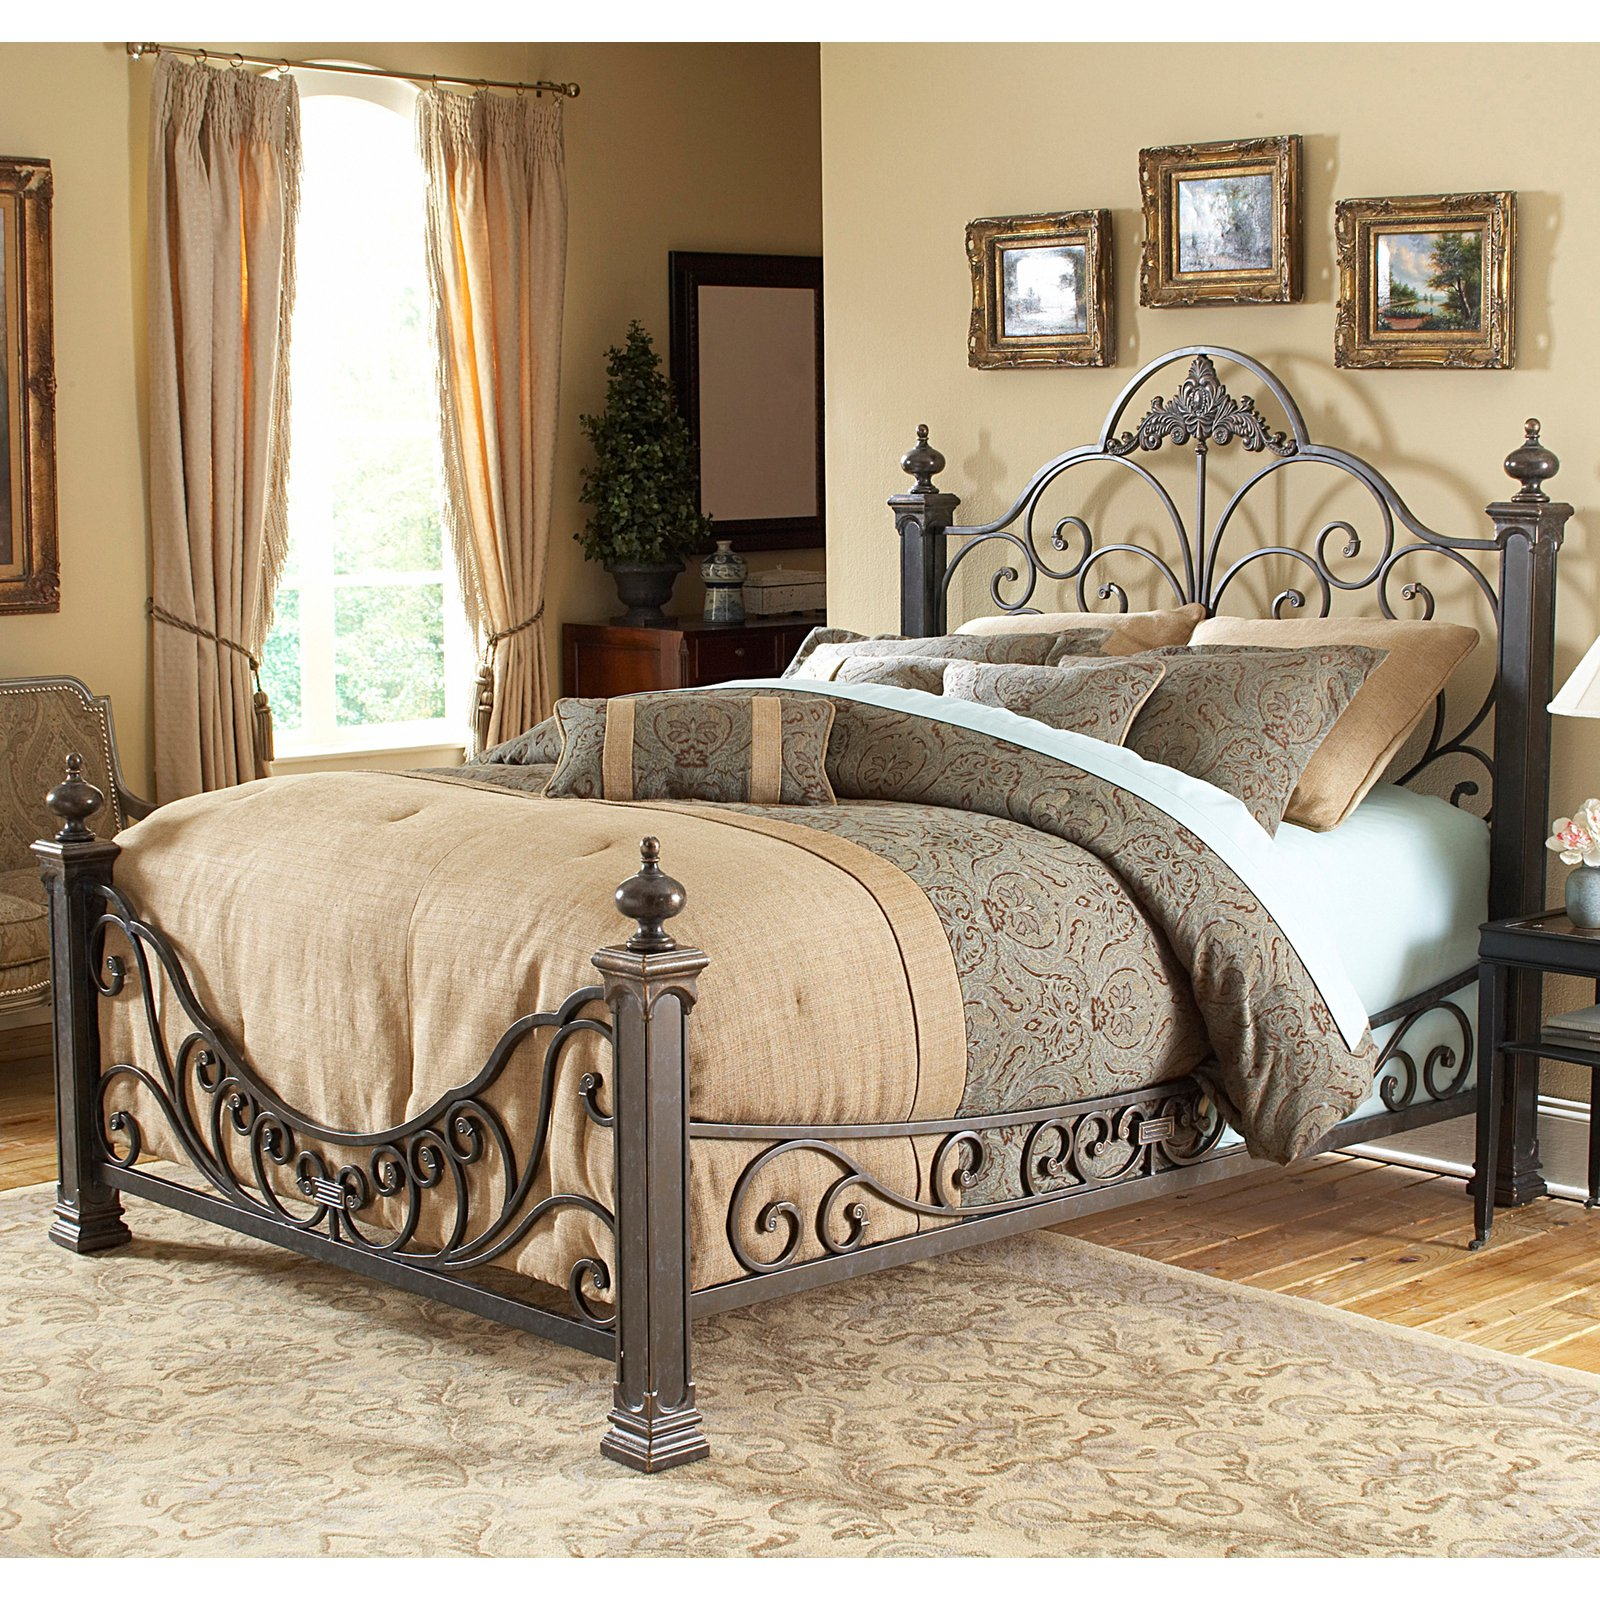 Fashion Bed Group Baroque Metal Poster Bed by Fashion Bed